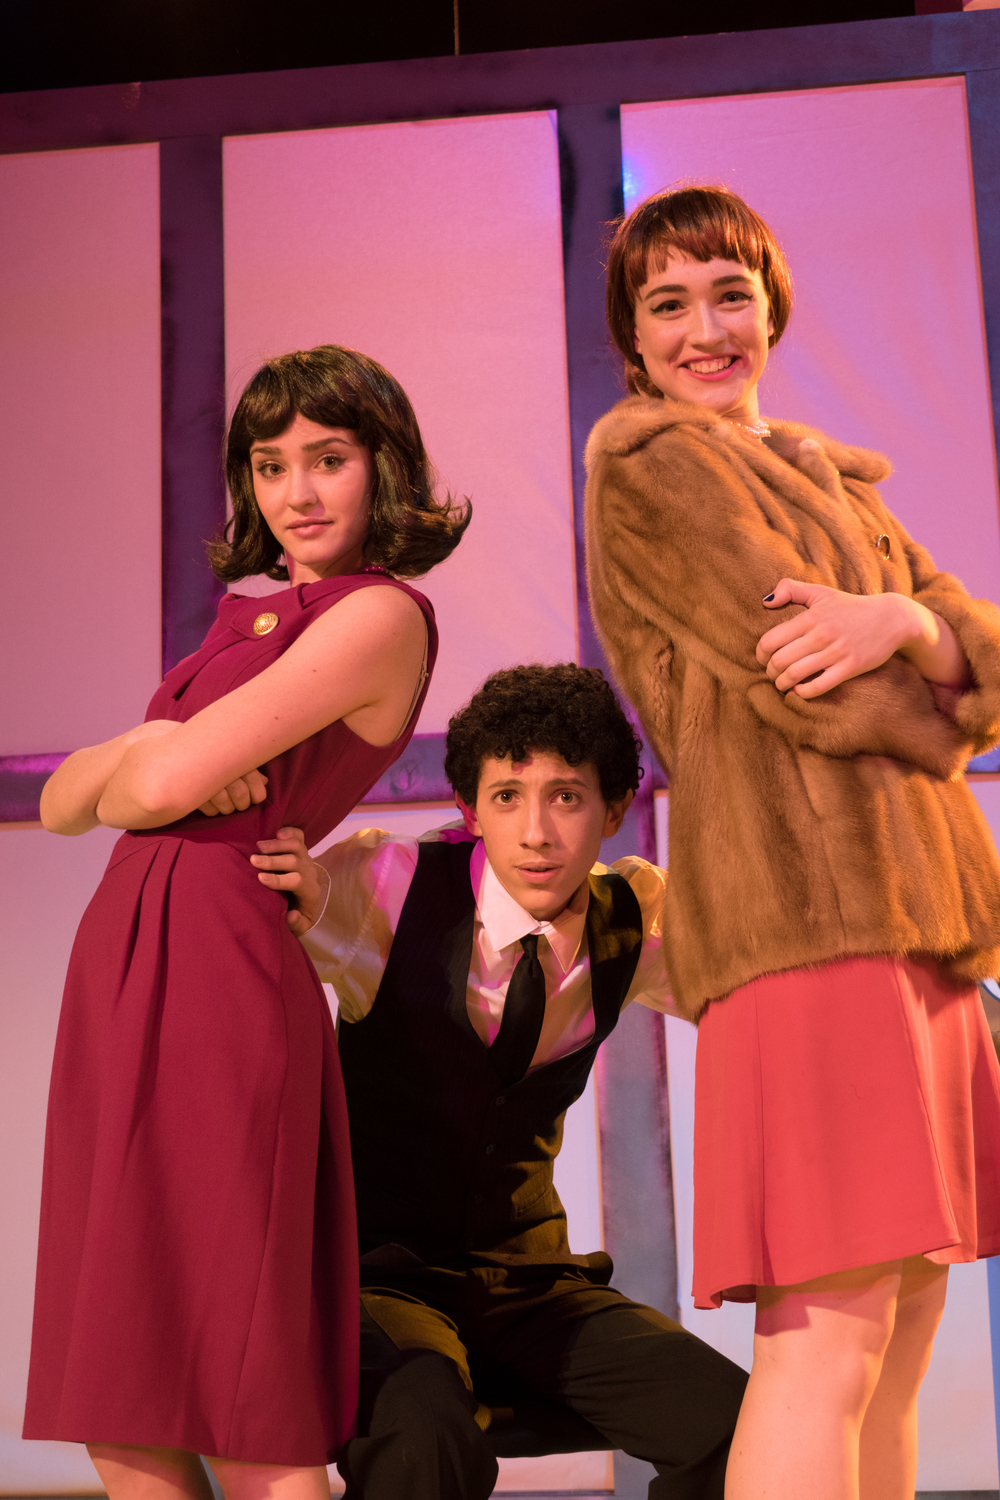 (L to R) In How to Succeed in Business Without Really Trying, Ciara Tolliver plays Rosemary Pilkington, Aaron Linker as J. Pierrepont Finch and Camille Umoff as Hedy LaRue. Photo Courtesy of Beau Lettieri.